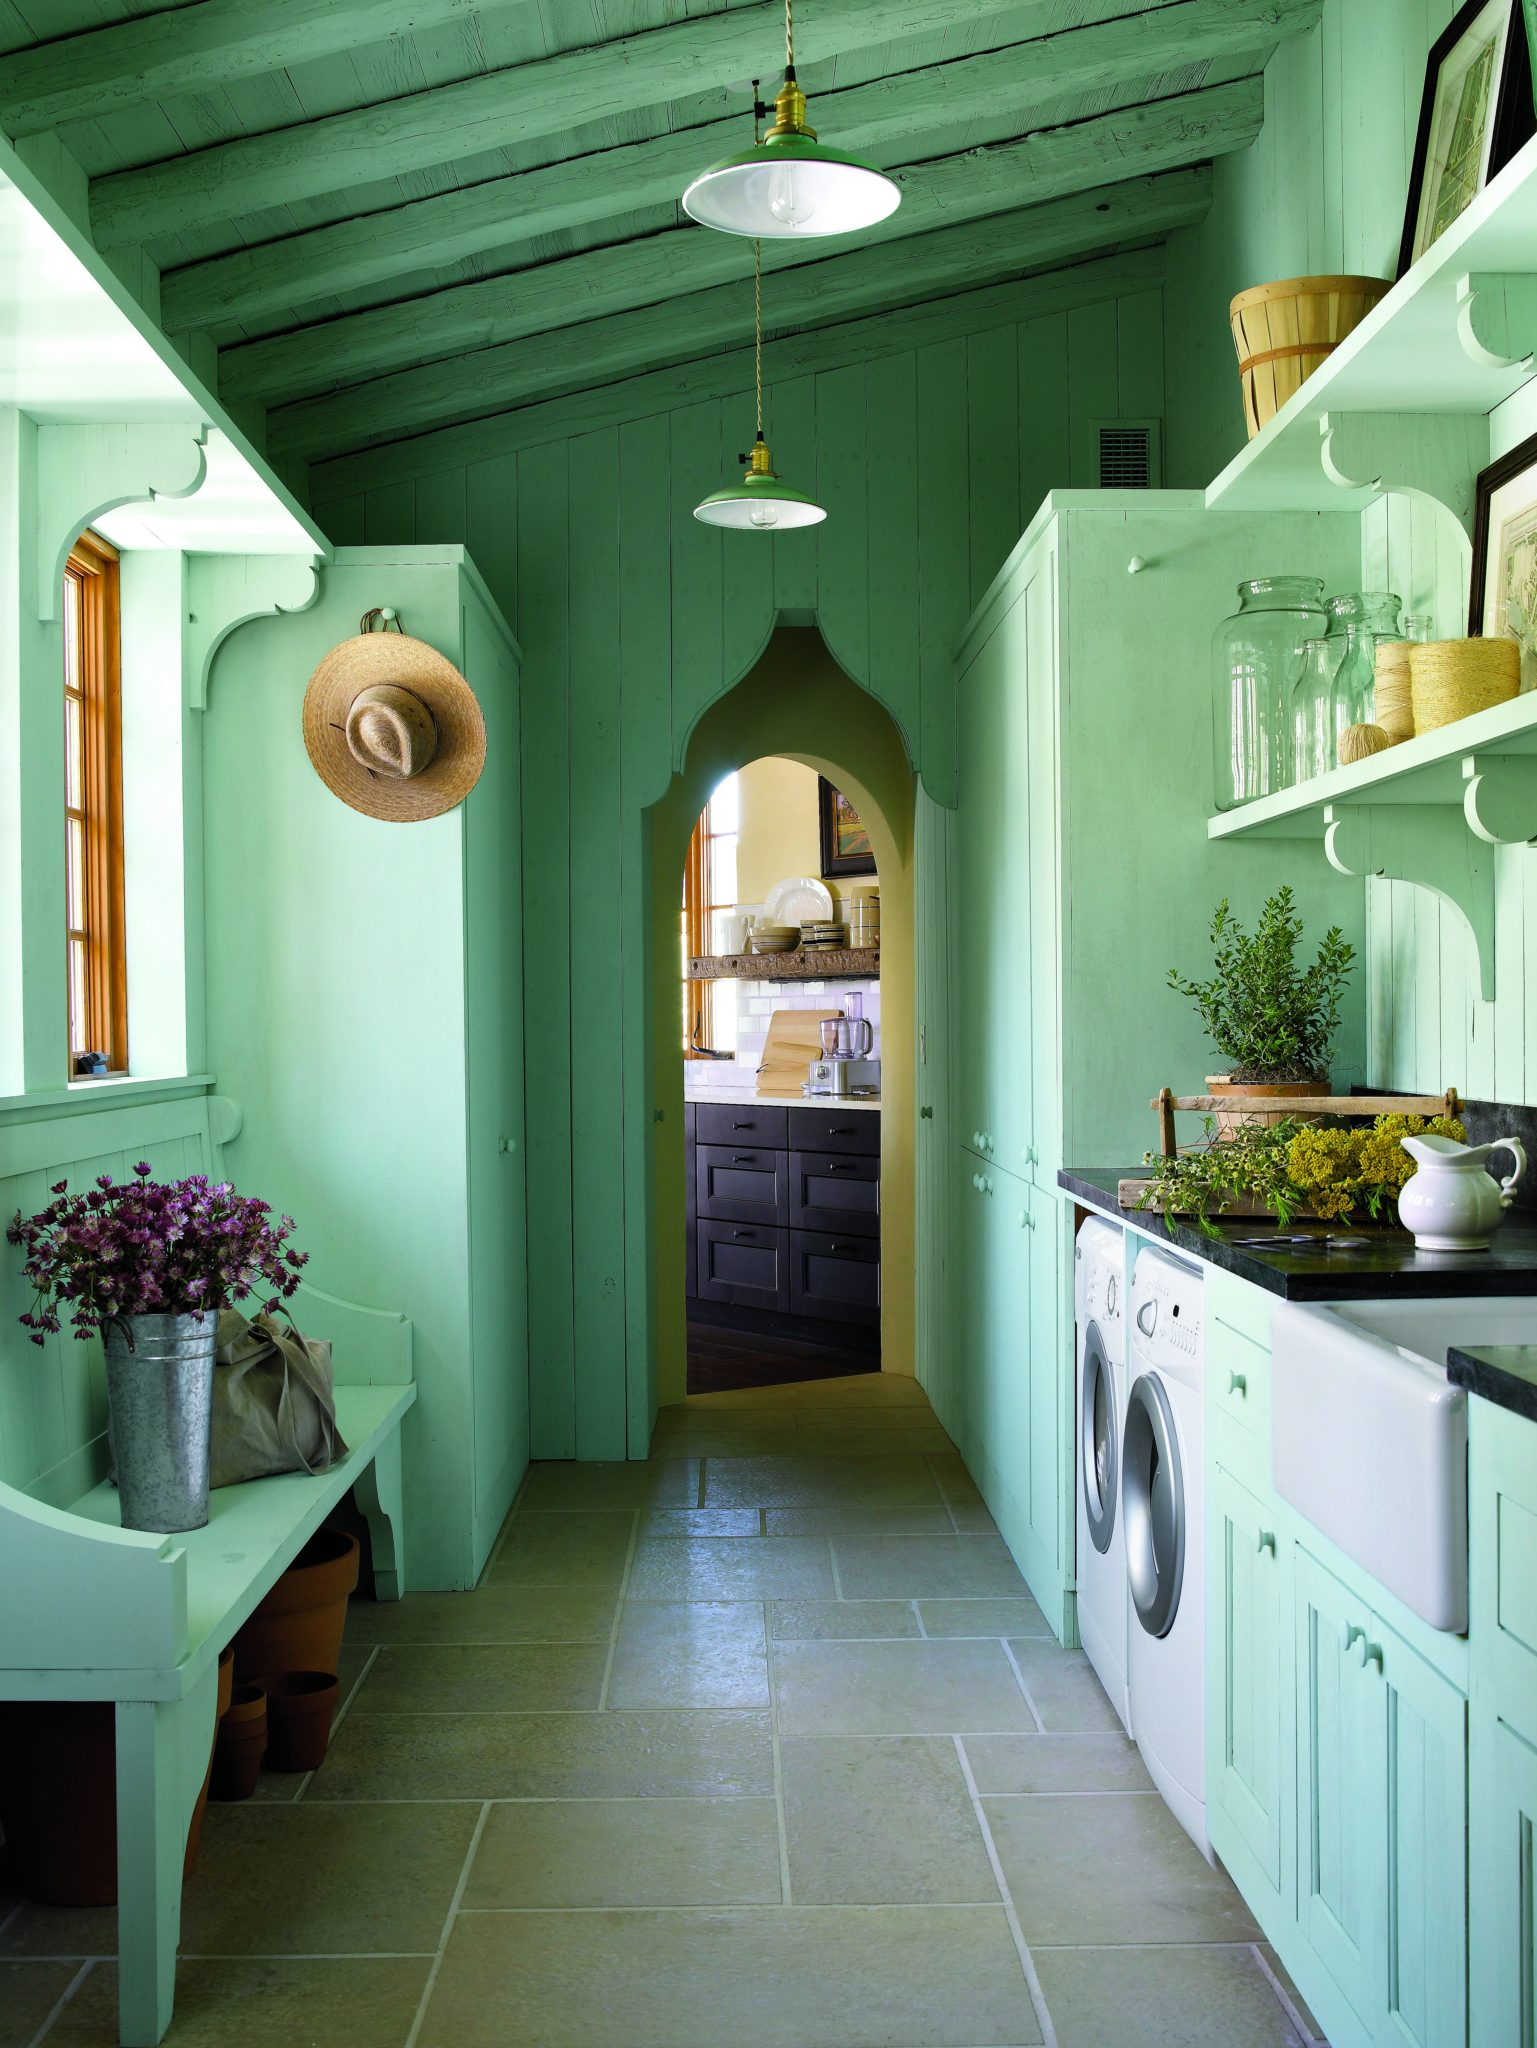 Laundry Room at the Southern Living Idea House by Michael G. Imber, Architects